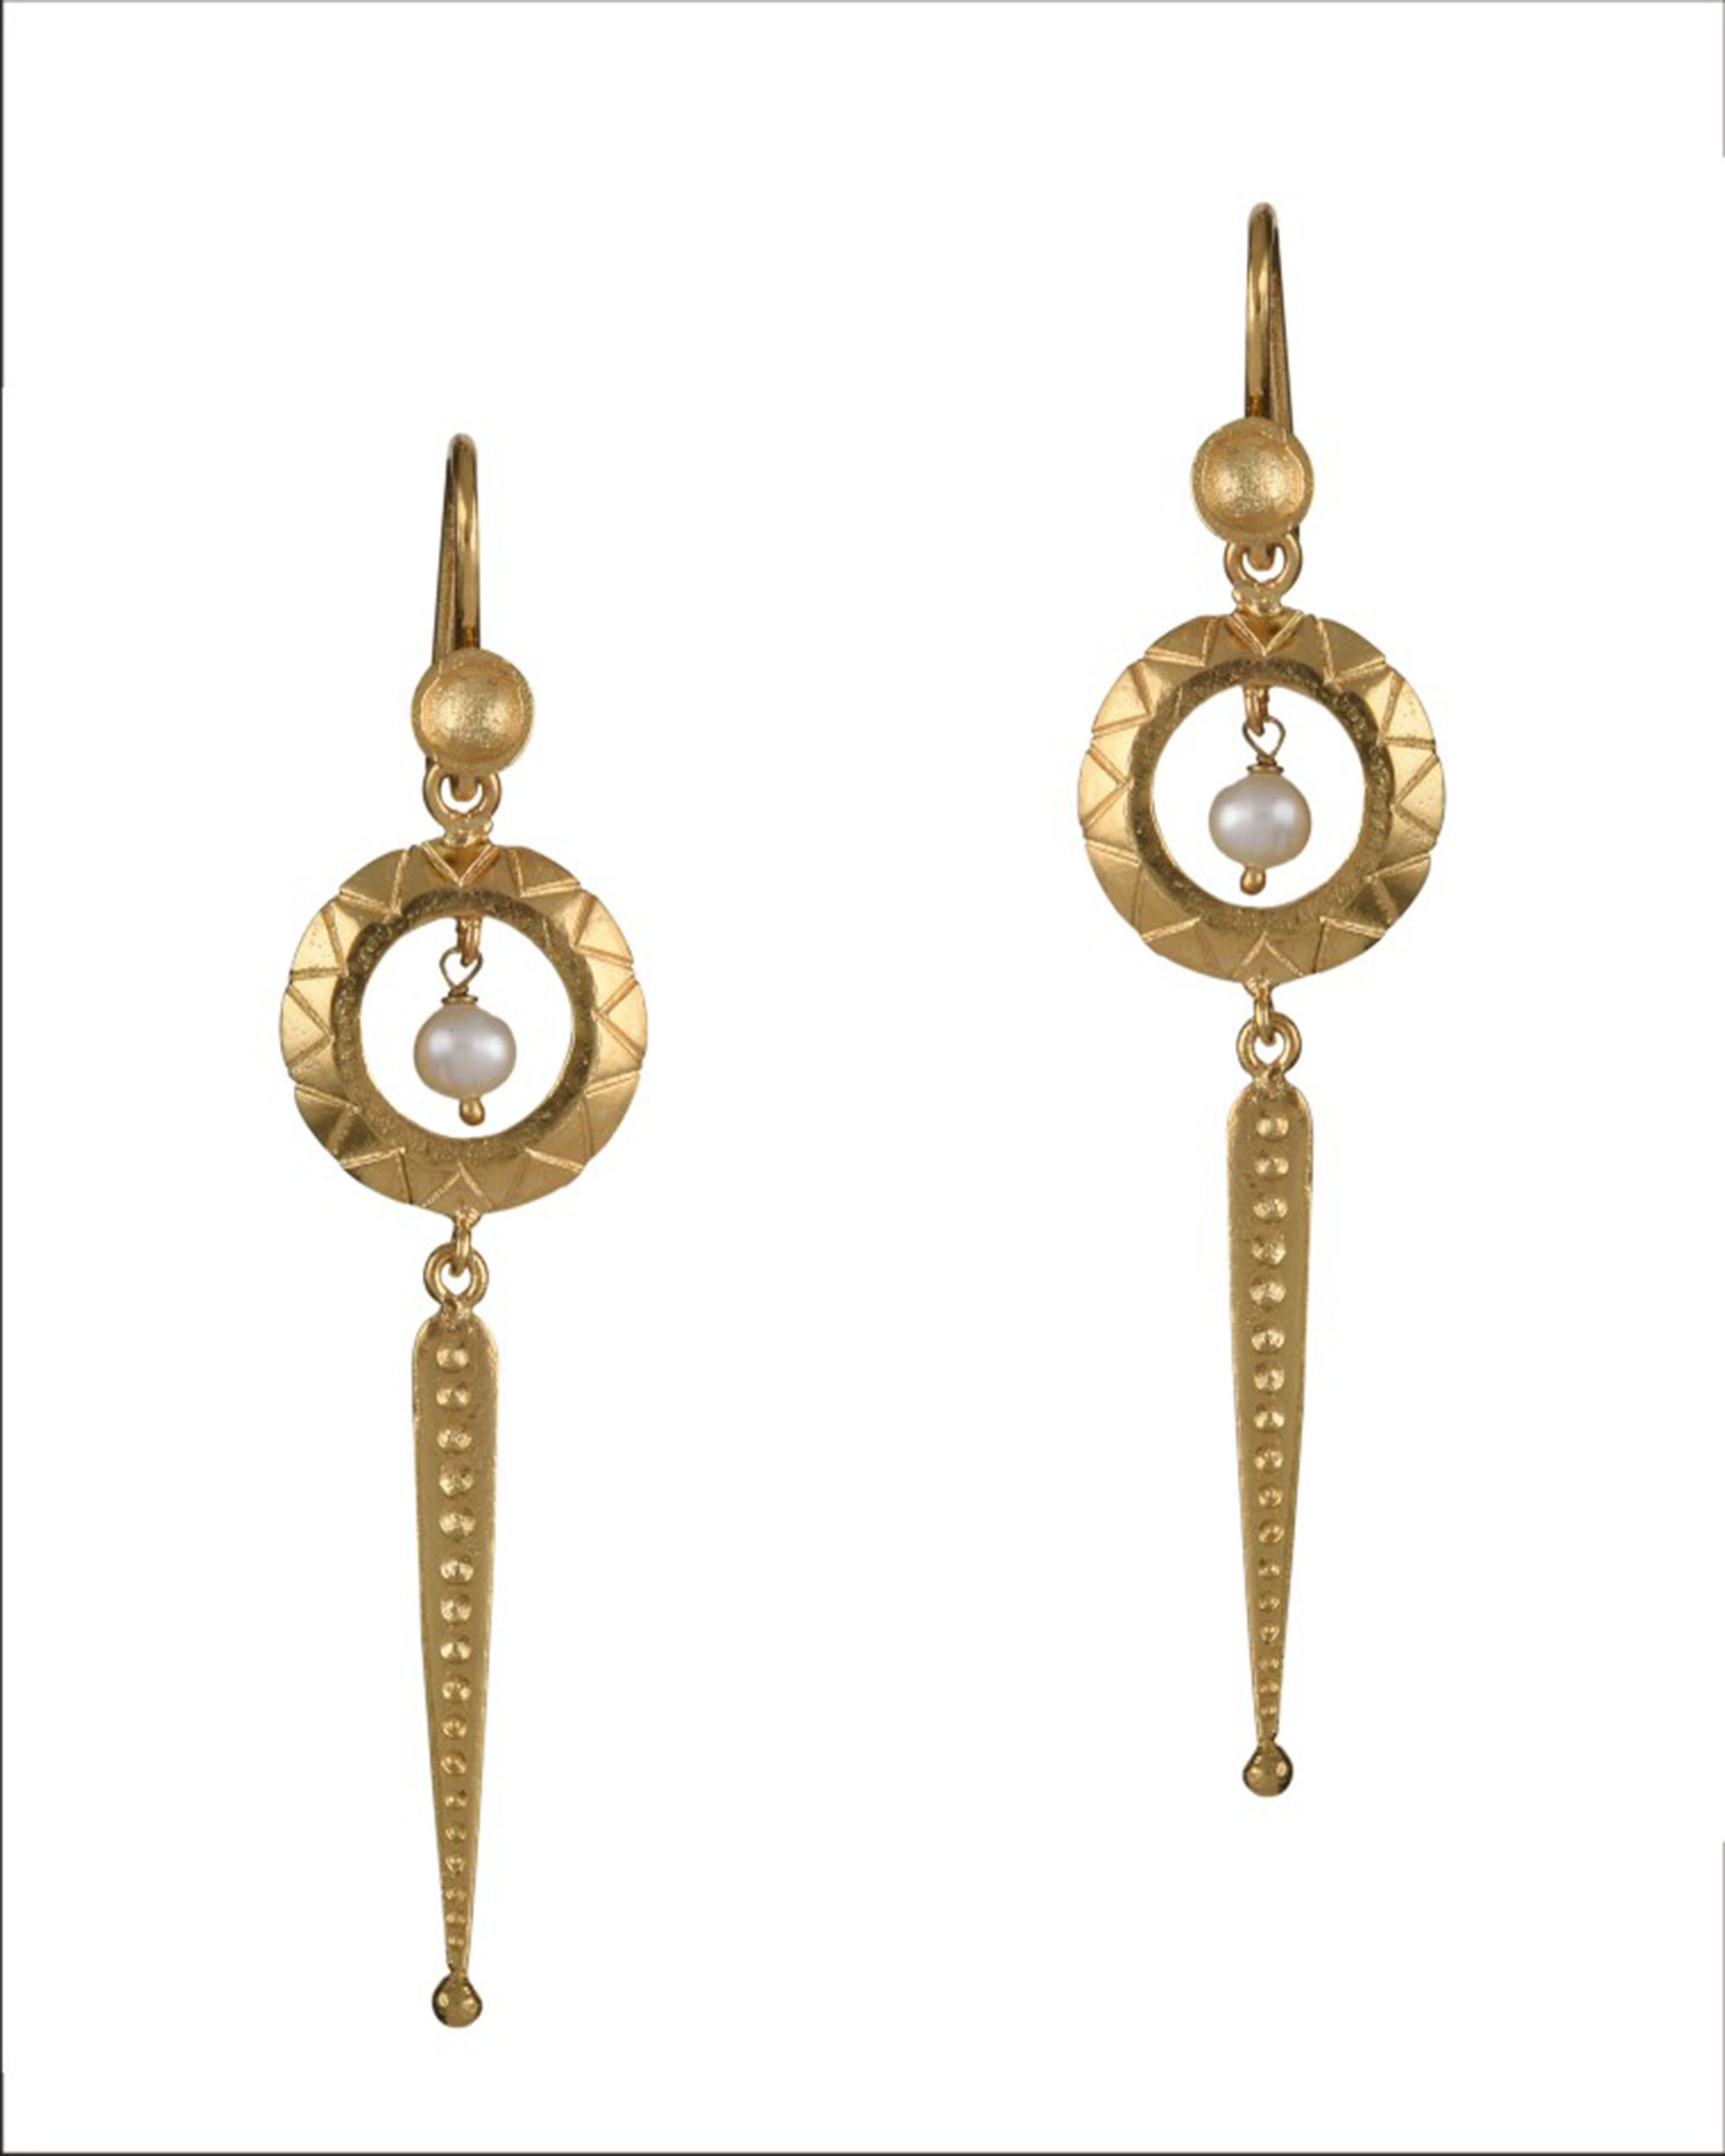 Rondele Earrings